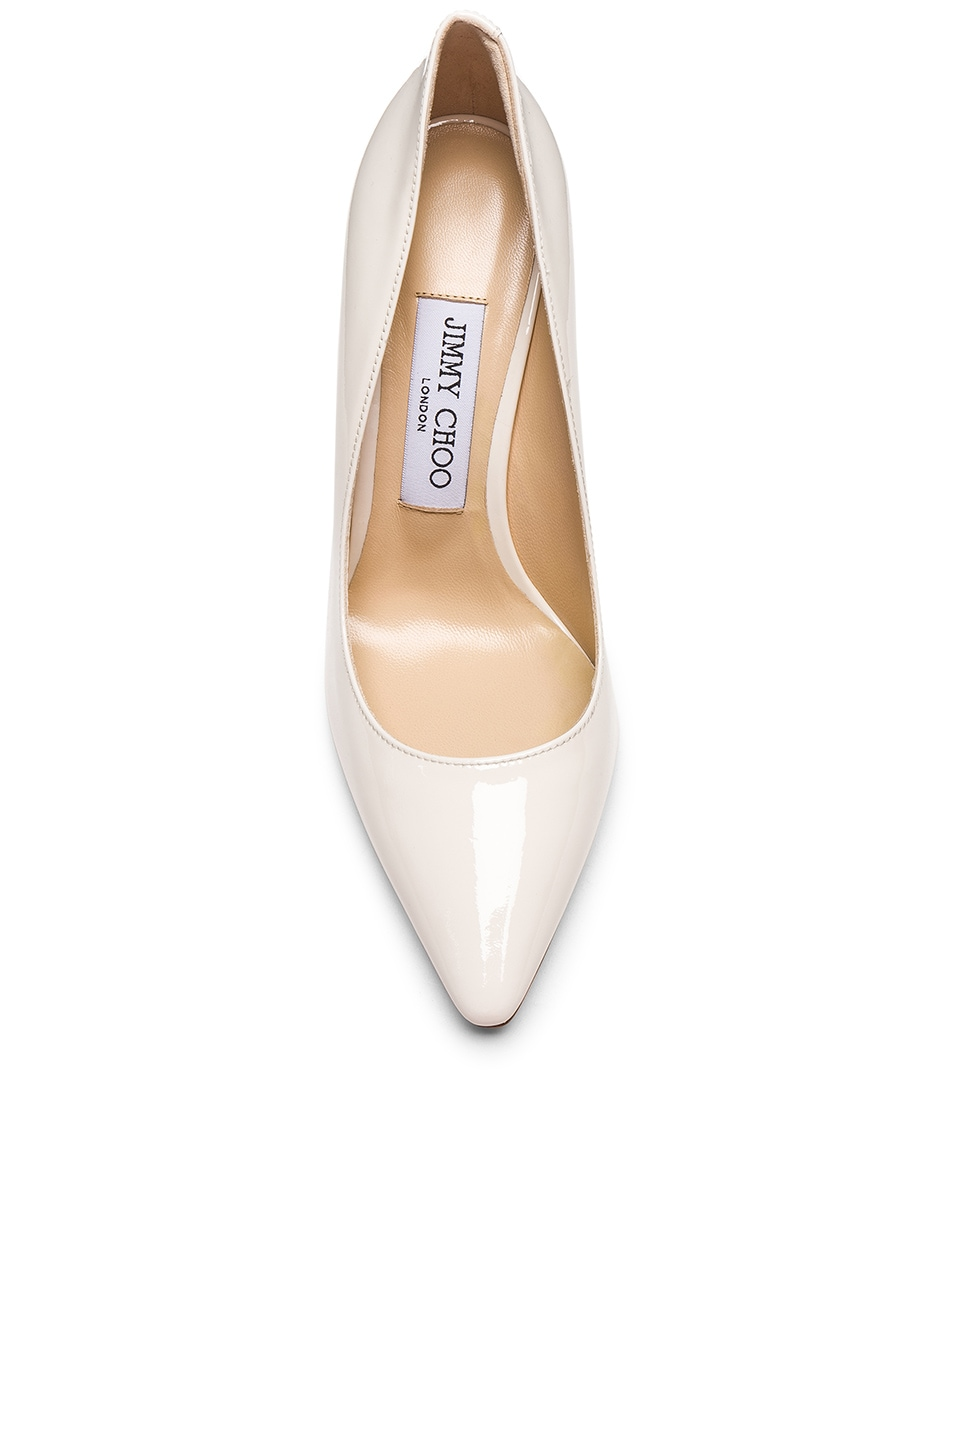 Image 4 of Jimmy Choo Romy 100 Patent Leather Heels in Chalk